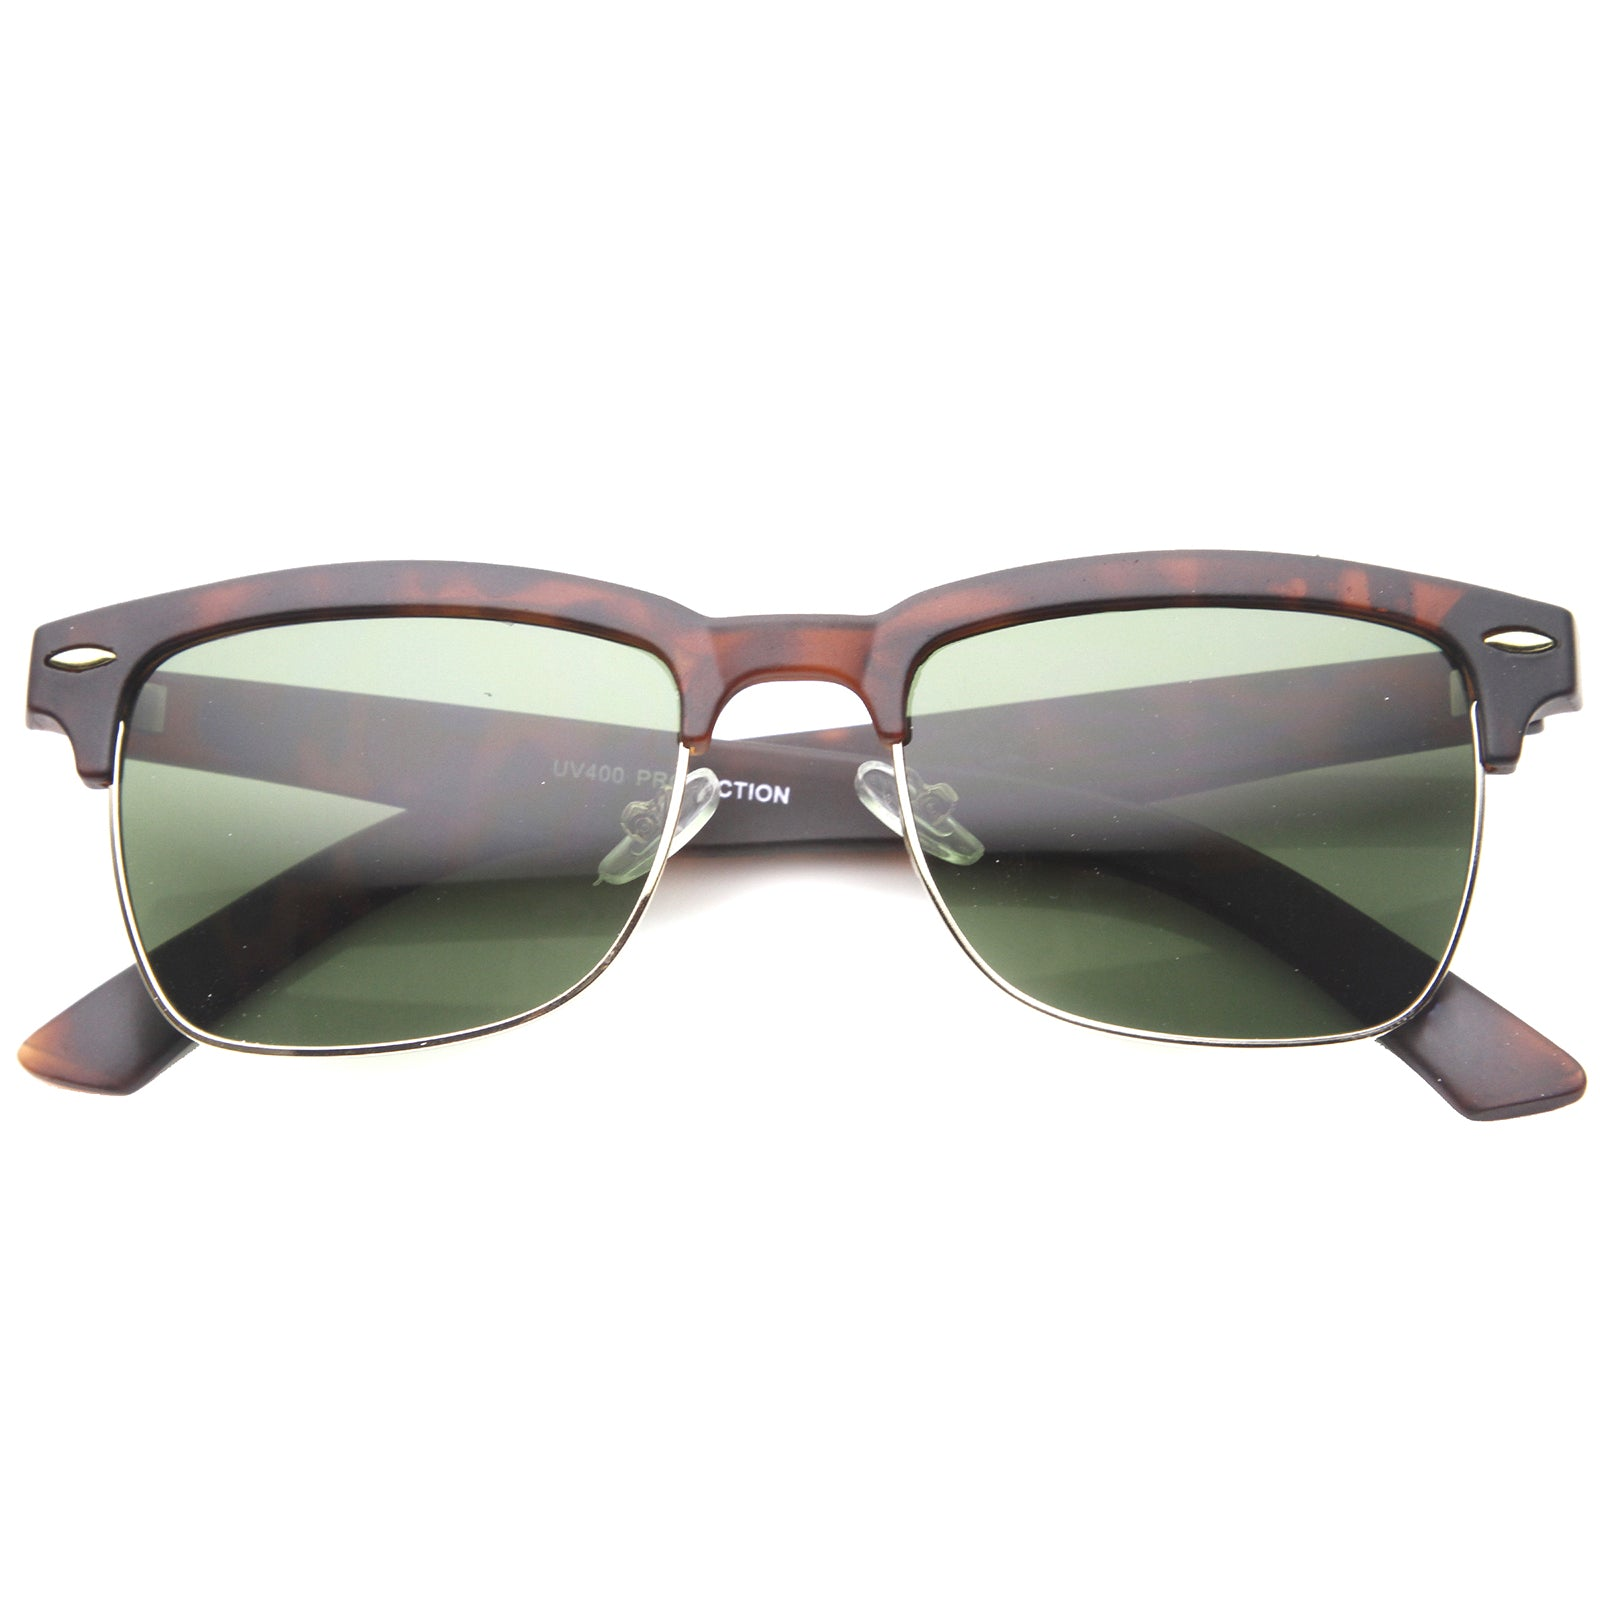 Mens Semi-Rimless Sunglasses With UV400 Protected Composite Lens - sunglass.la - 6